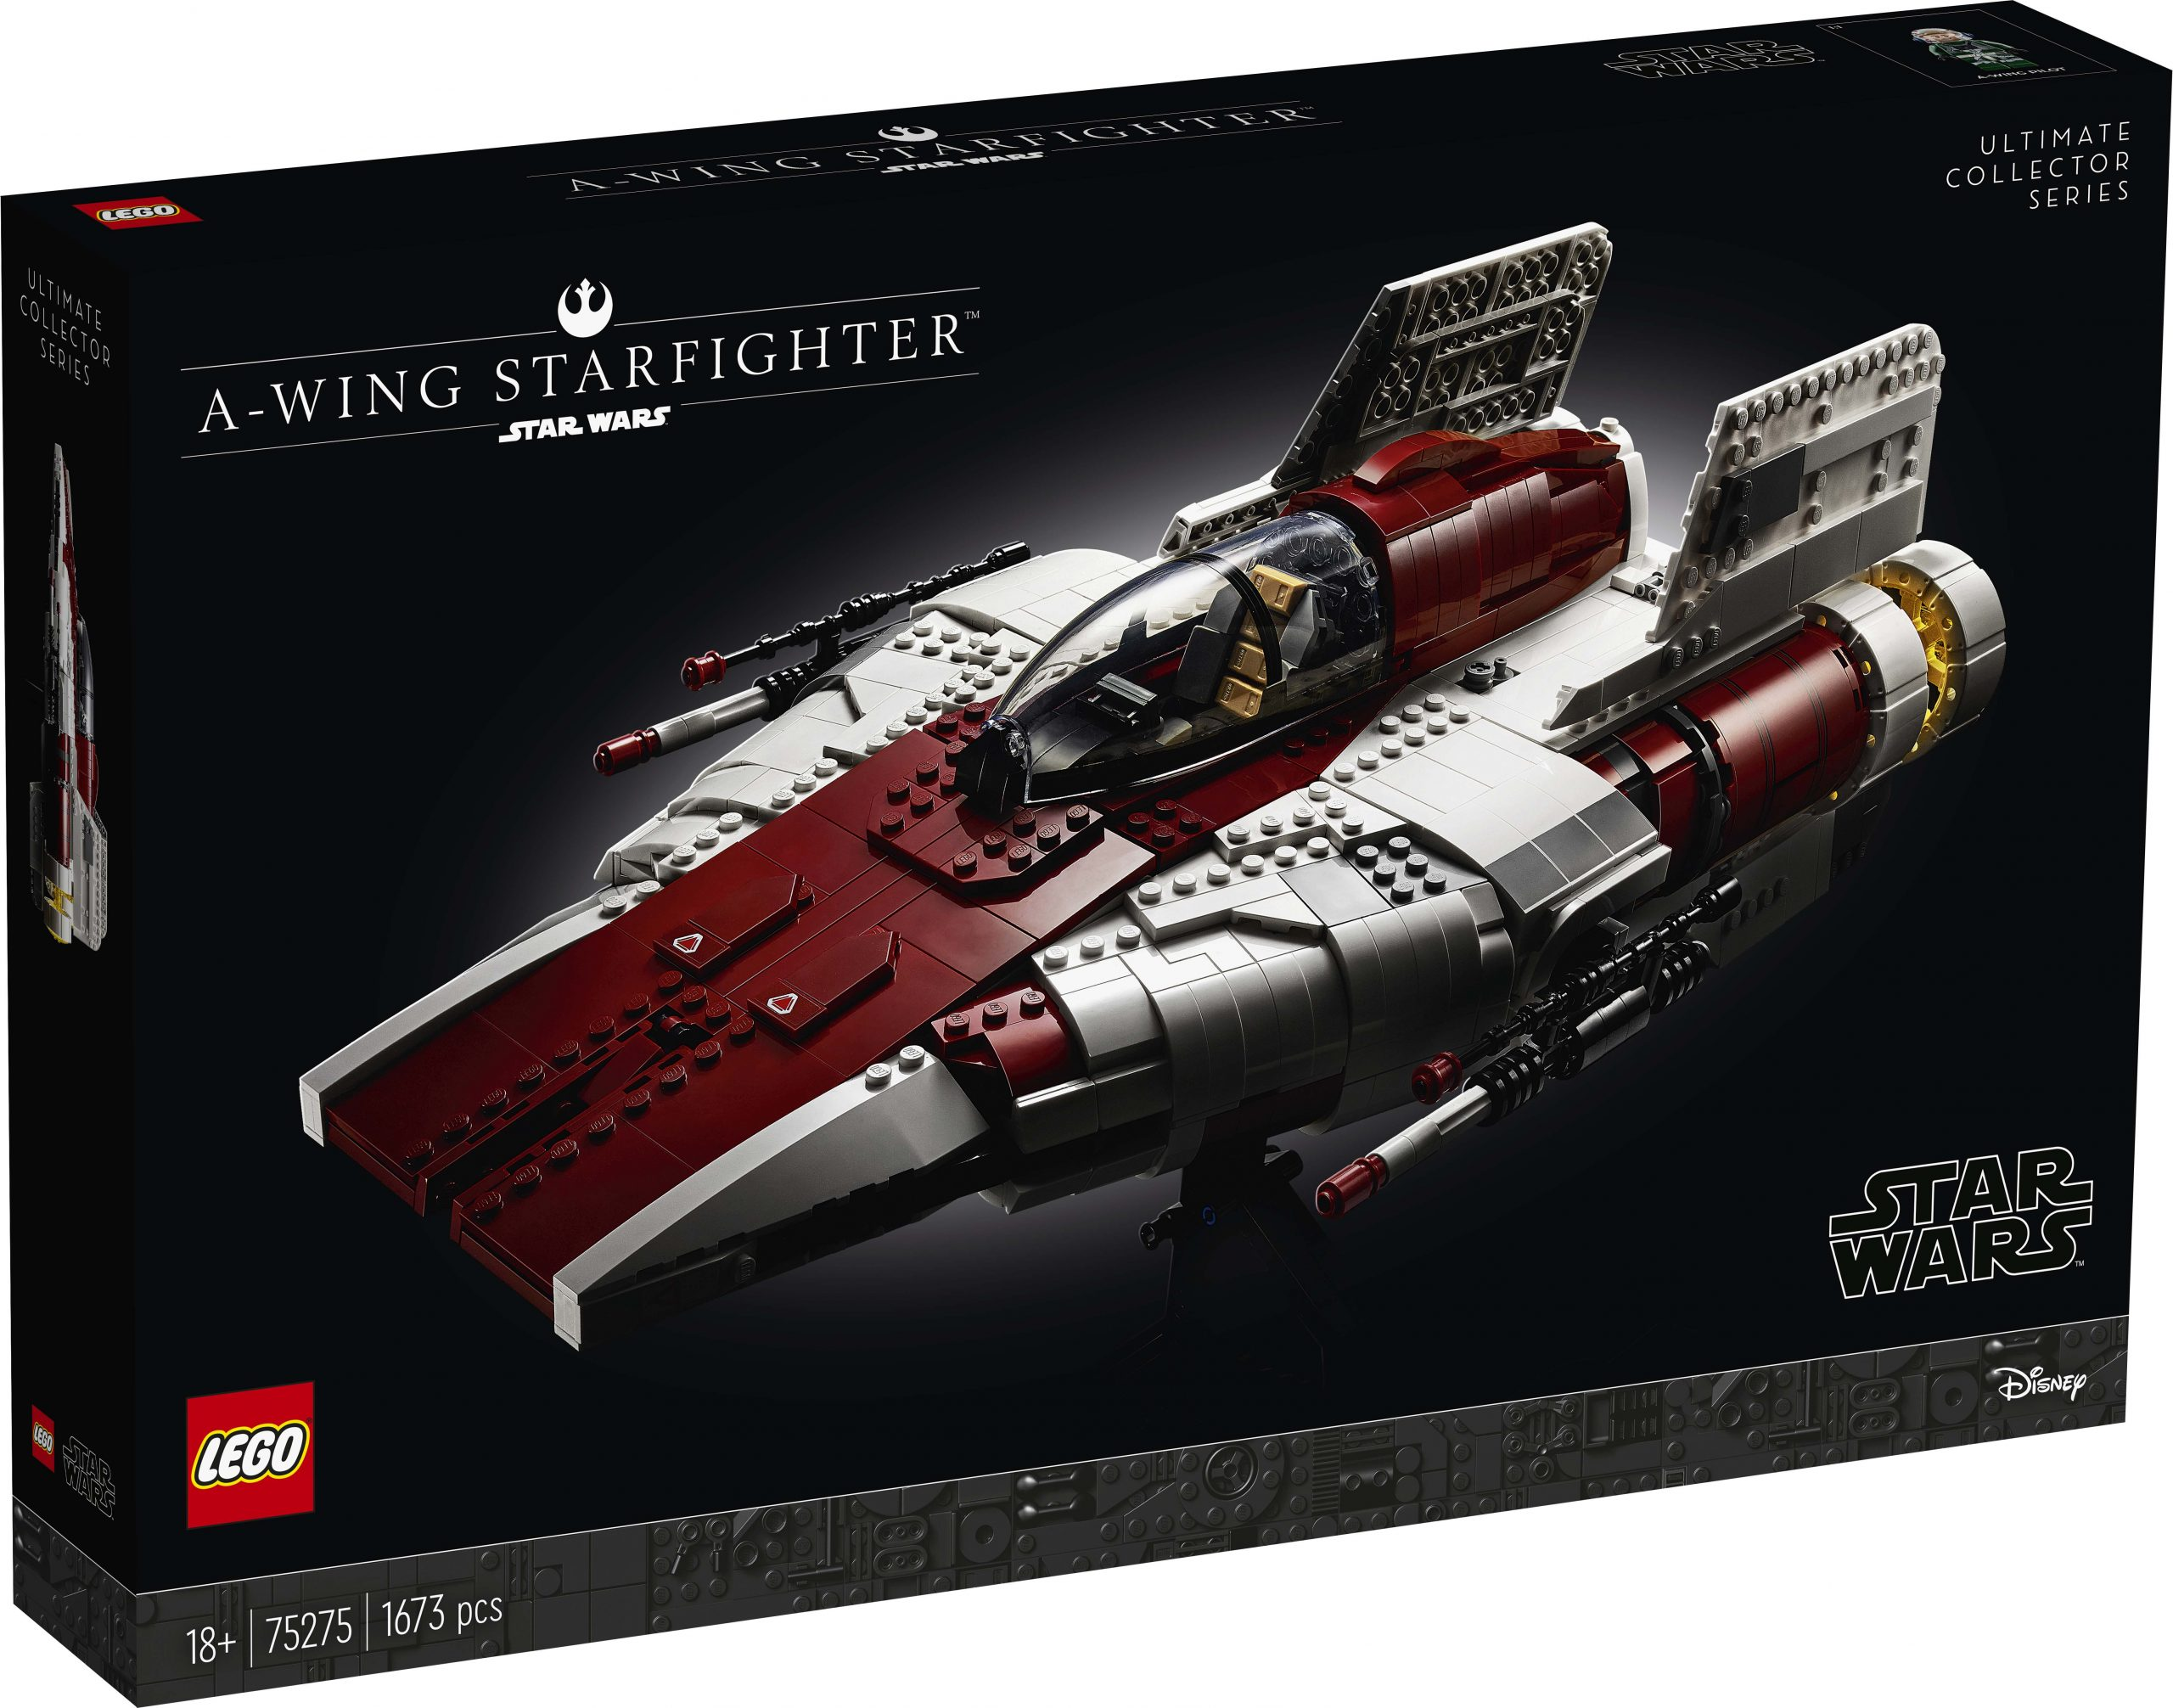 lego-star-wars-a-wing-starfighter-75275-scaled.jpg